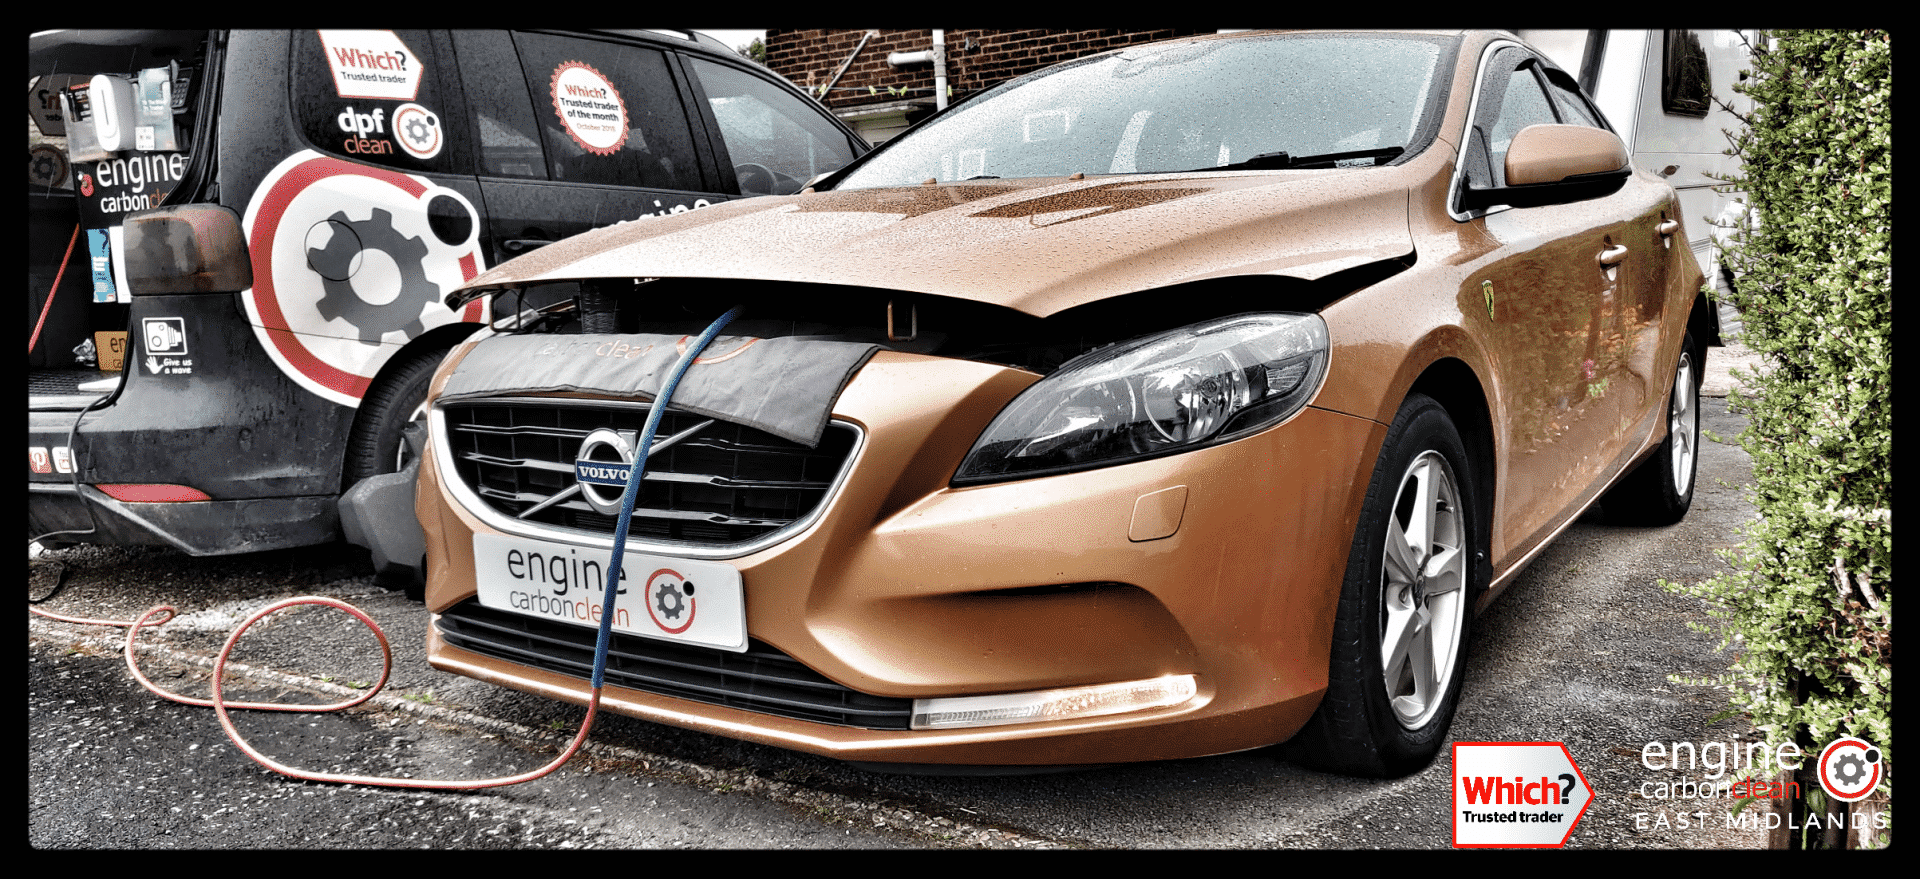 Turbo sensor issues discovered on this Volvo V40 D3 just prior to a remap (2012 - 118,914 miles)